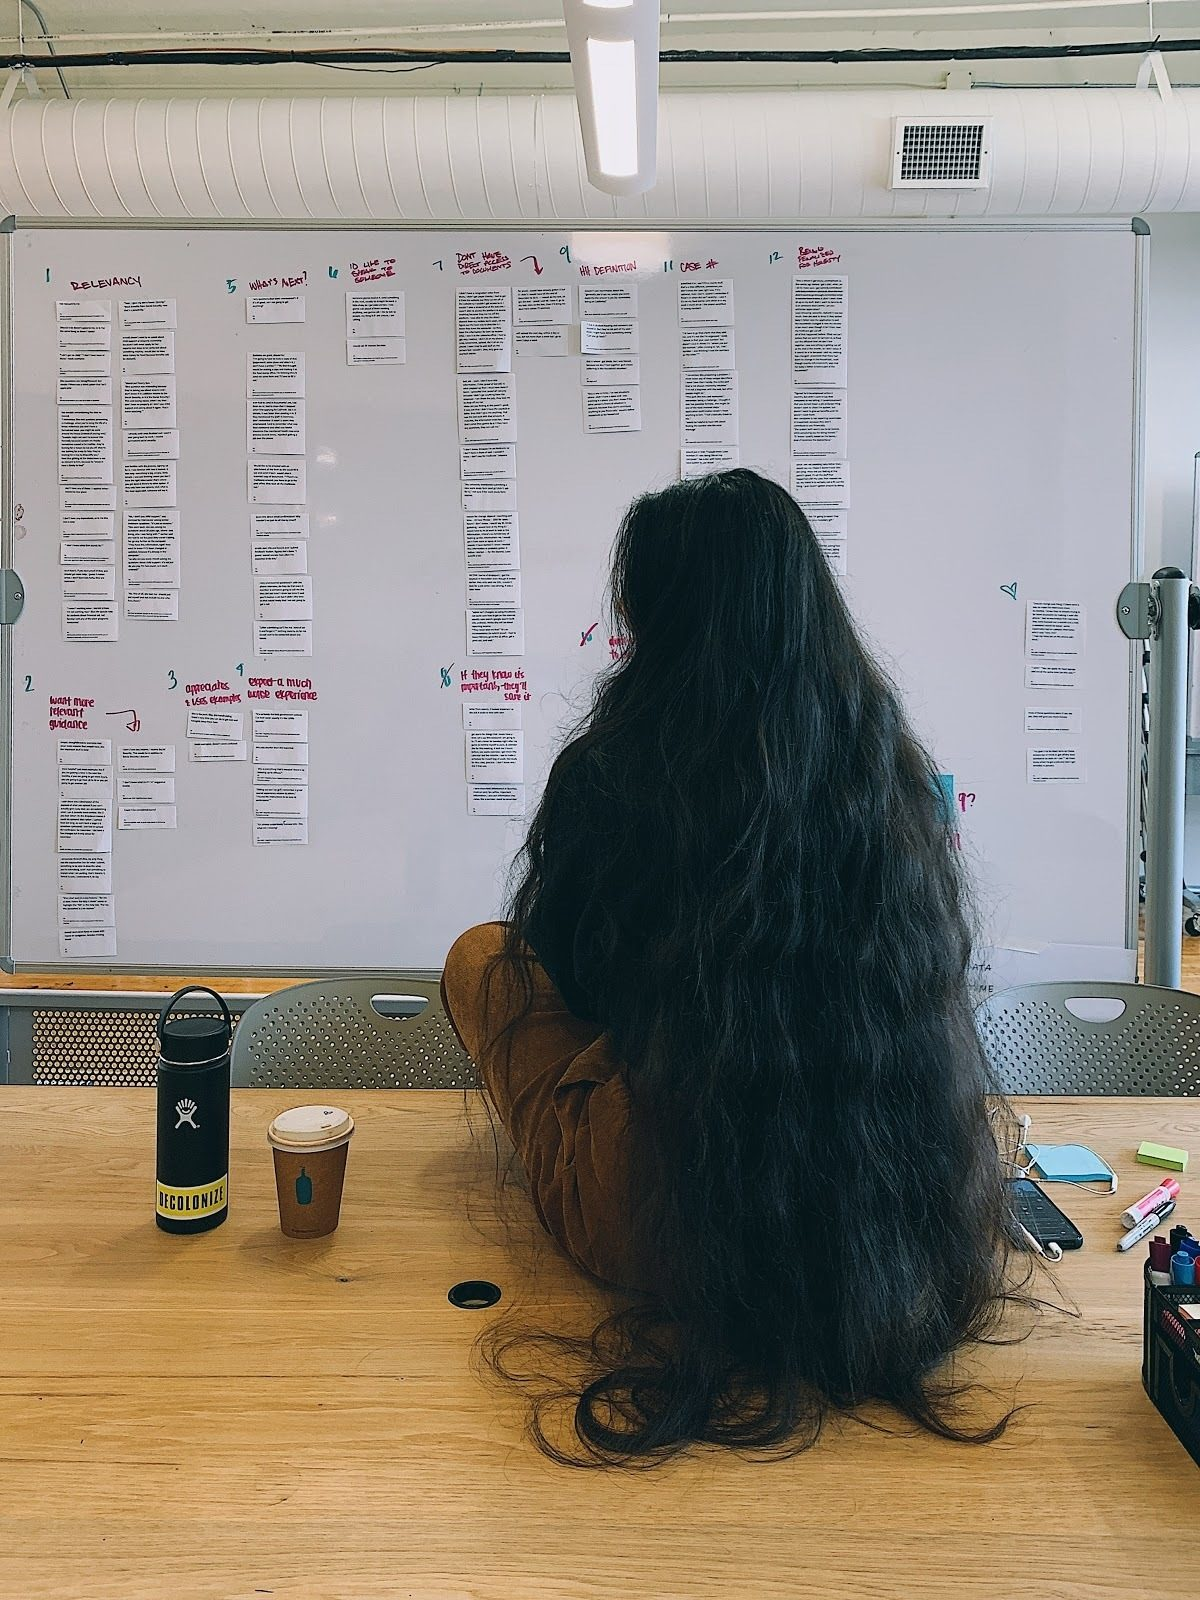 Researcher sitting in front of an affinity map whiteboard